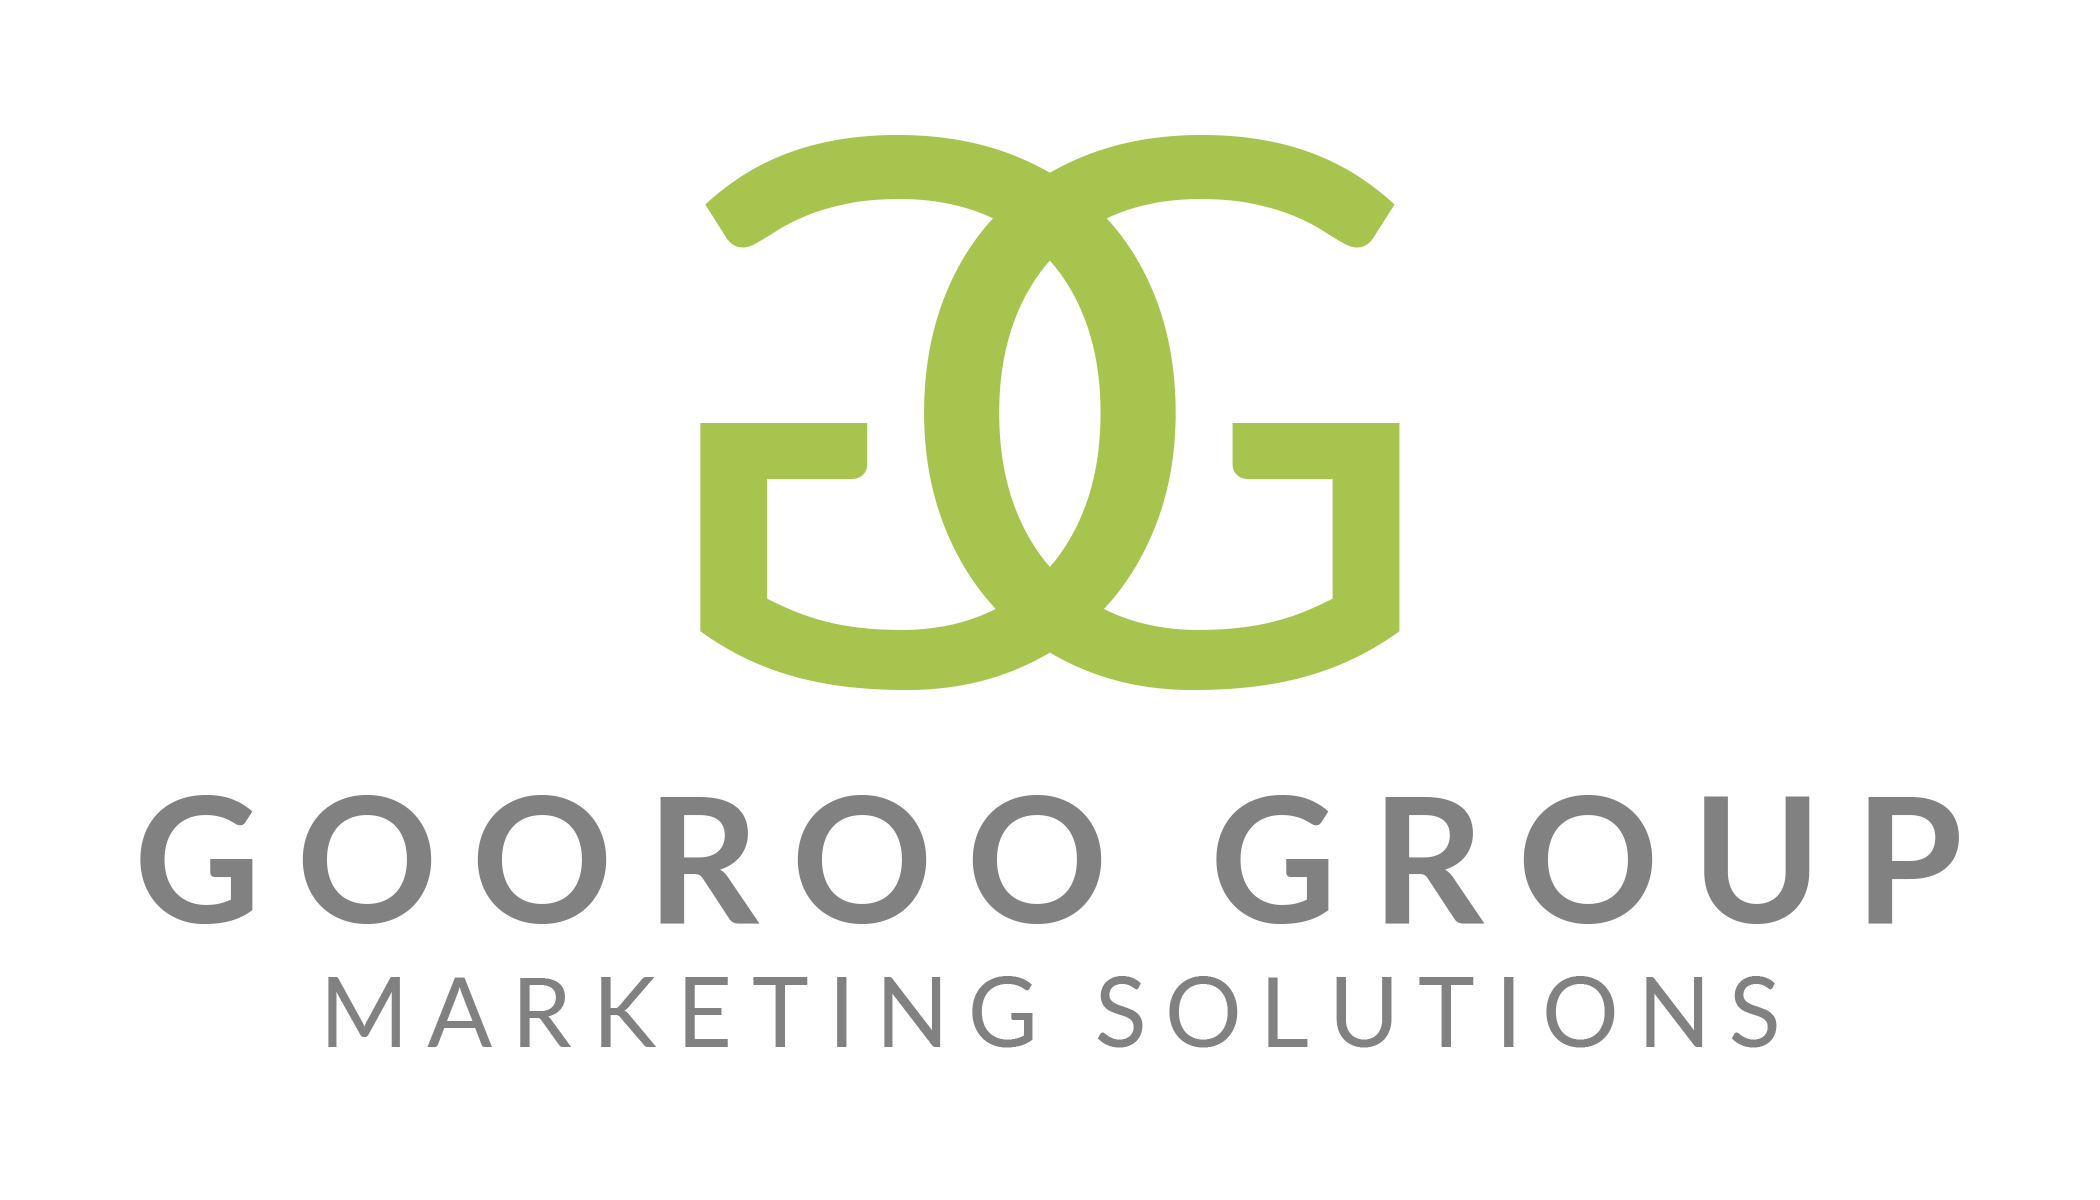 GOOROO GROUP